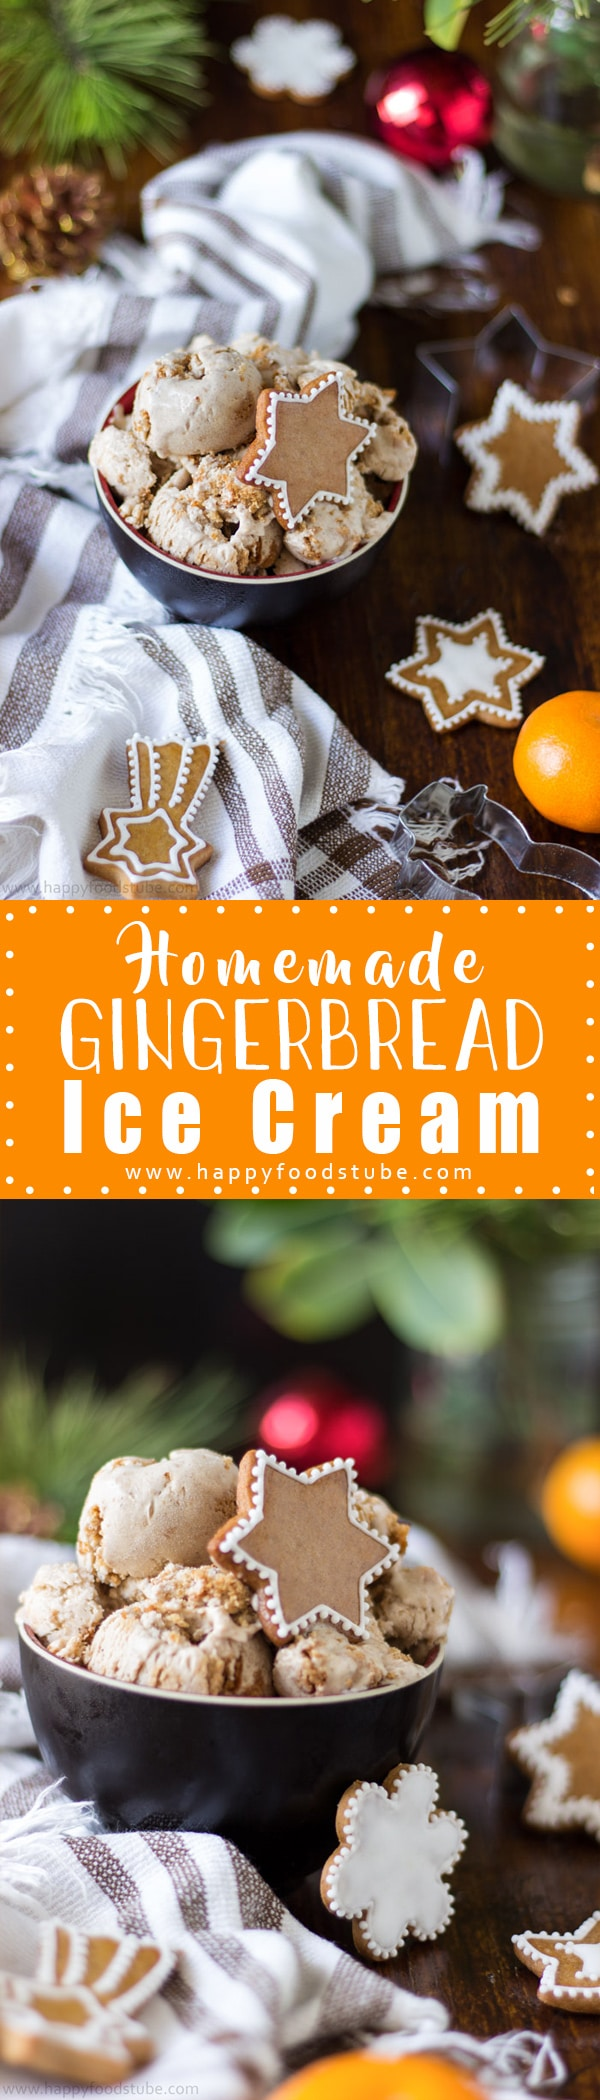 Planning on baking gingerbread cookies? Why not make gingerbread ice cream as well? Super easy rcipe only 5 ingredients. Ready in 15 minutes | happyfoodstube.com